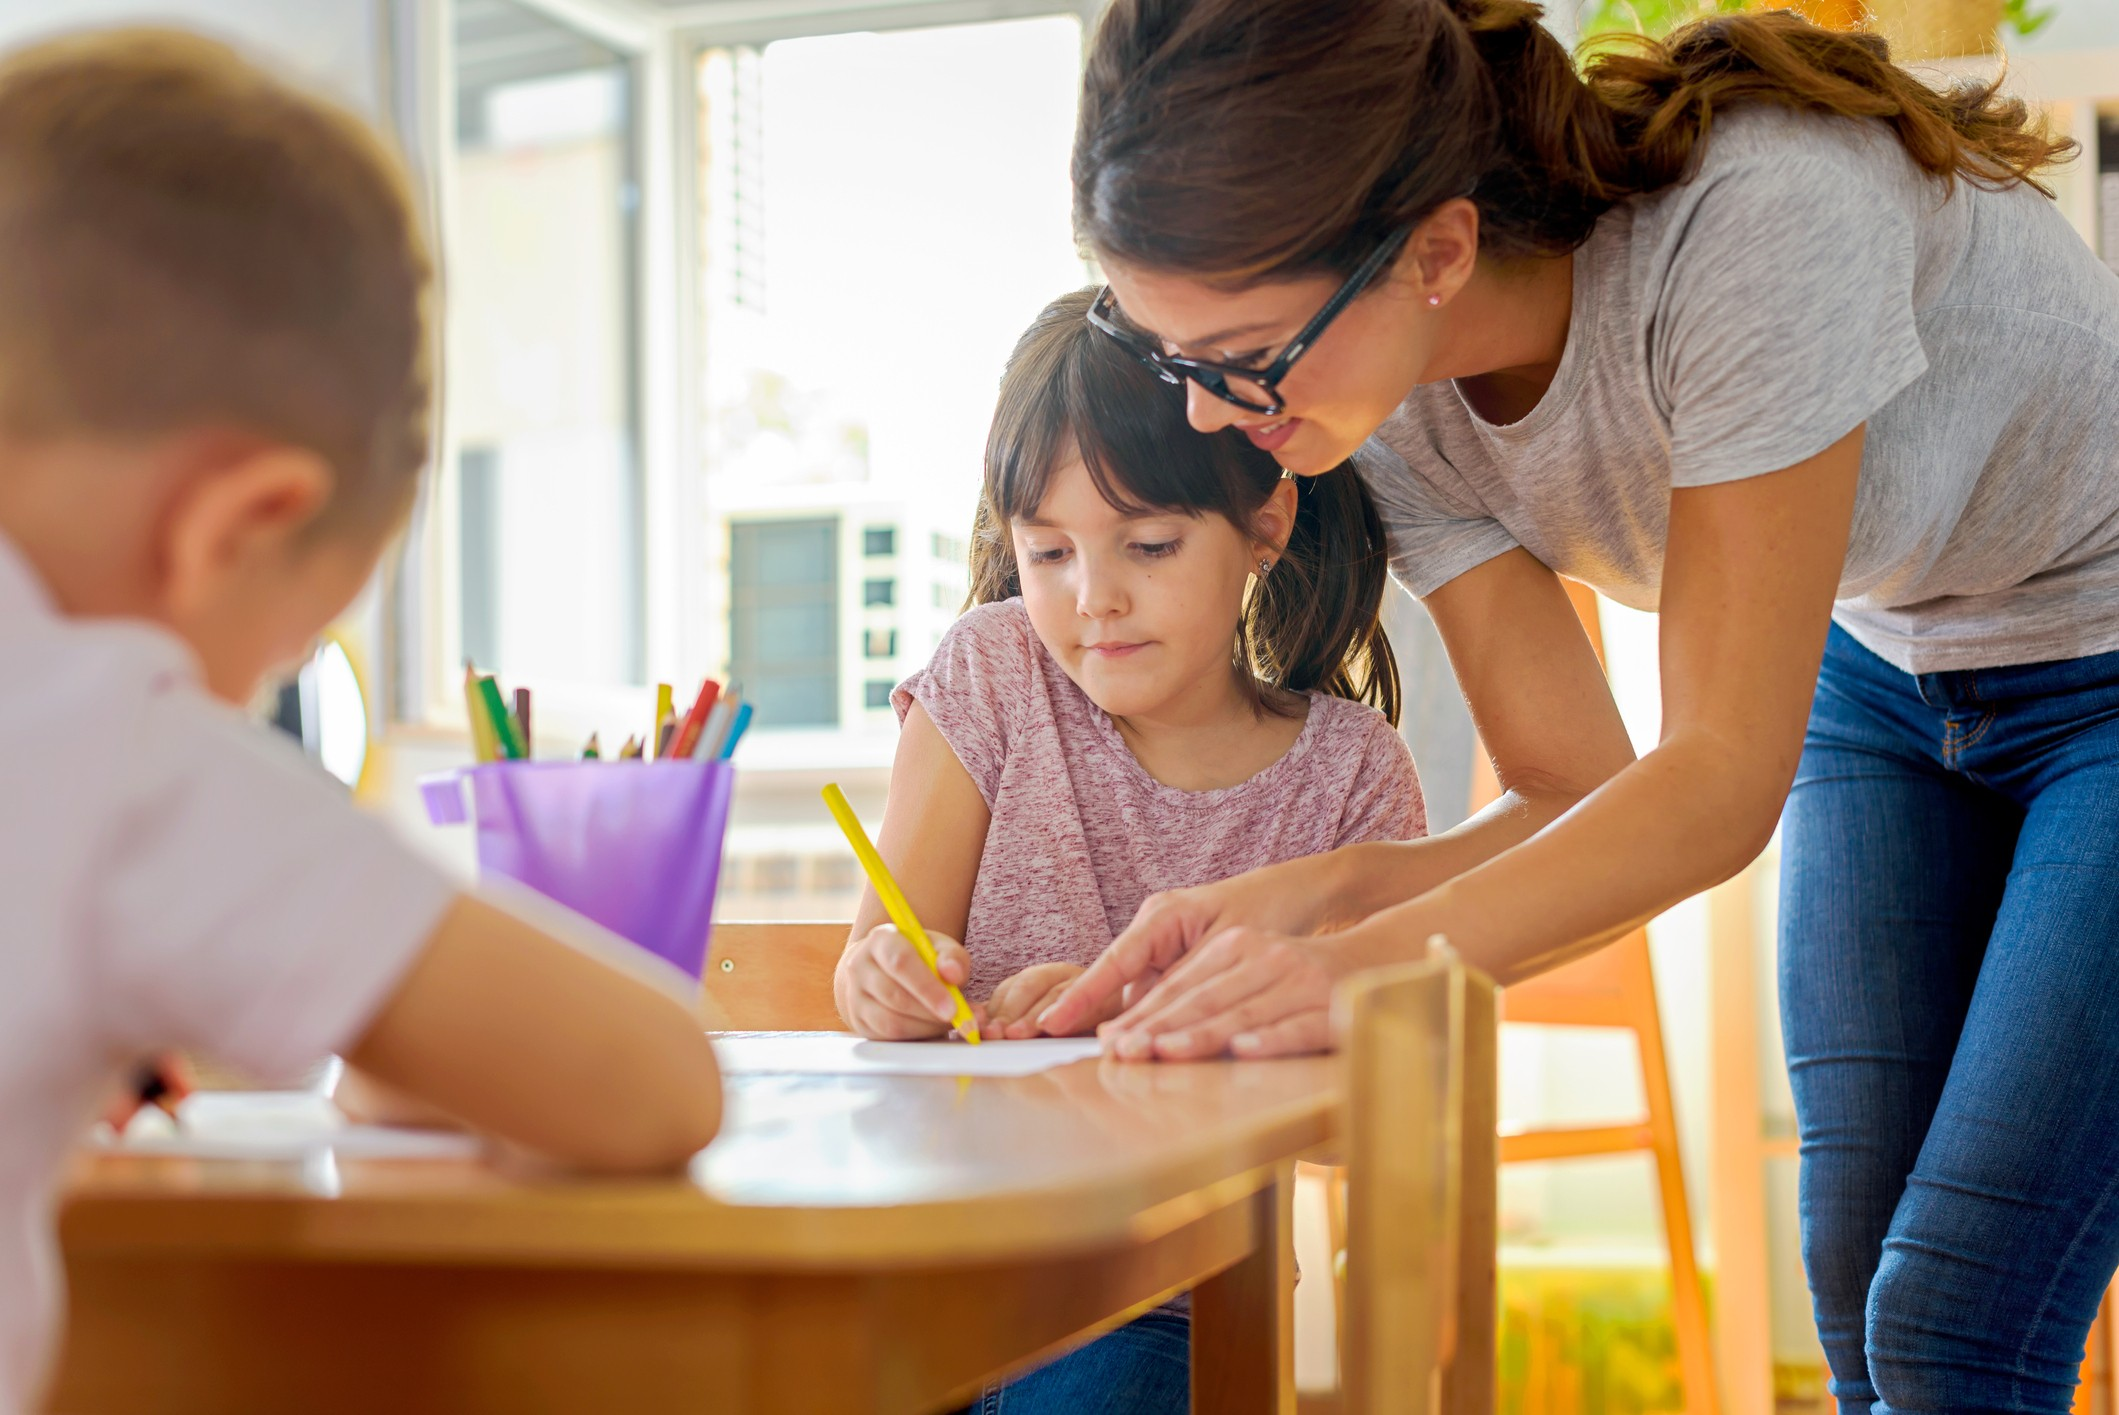 A teacher works one on one with a kindergarten student working at a wooden table.